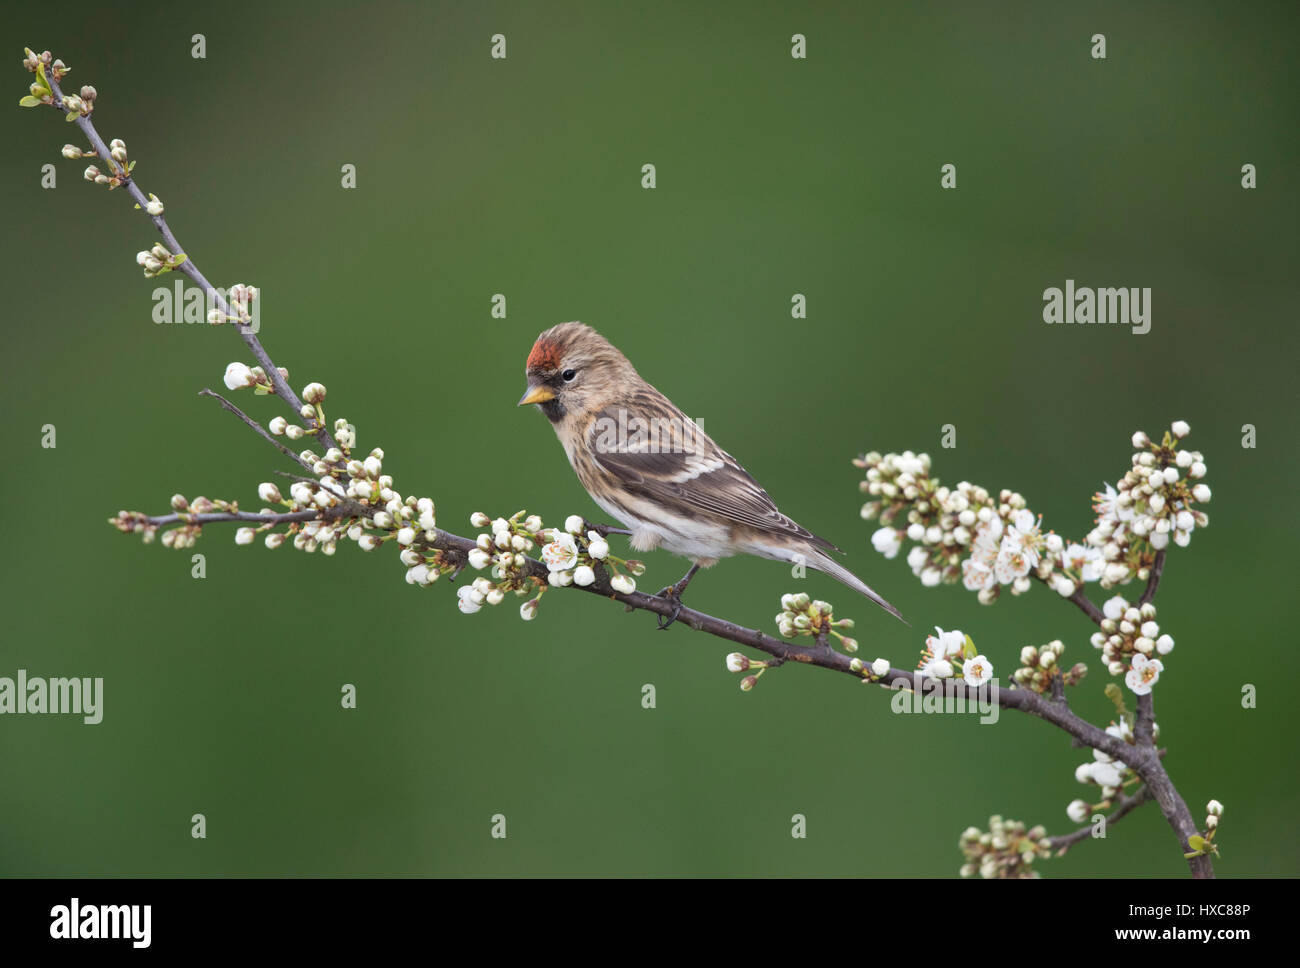 Common Redpoll  on a flowering Blackthorn branch in spring, 2017, on the Wales/Shropshire border, uk - Stock Image